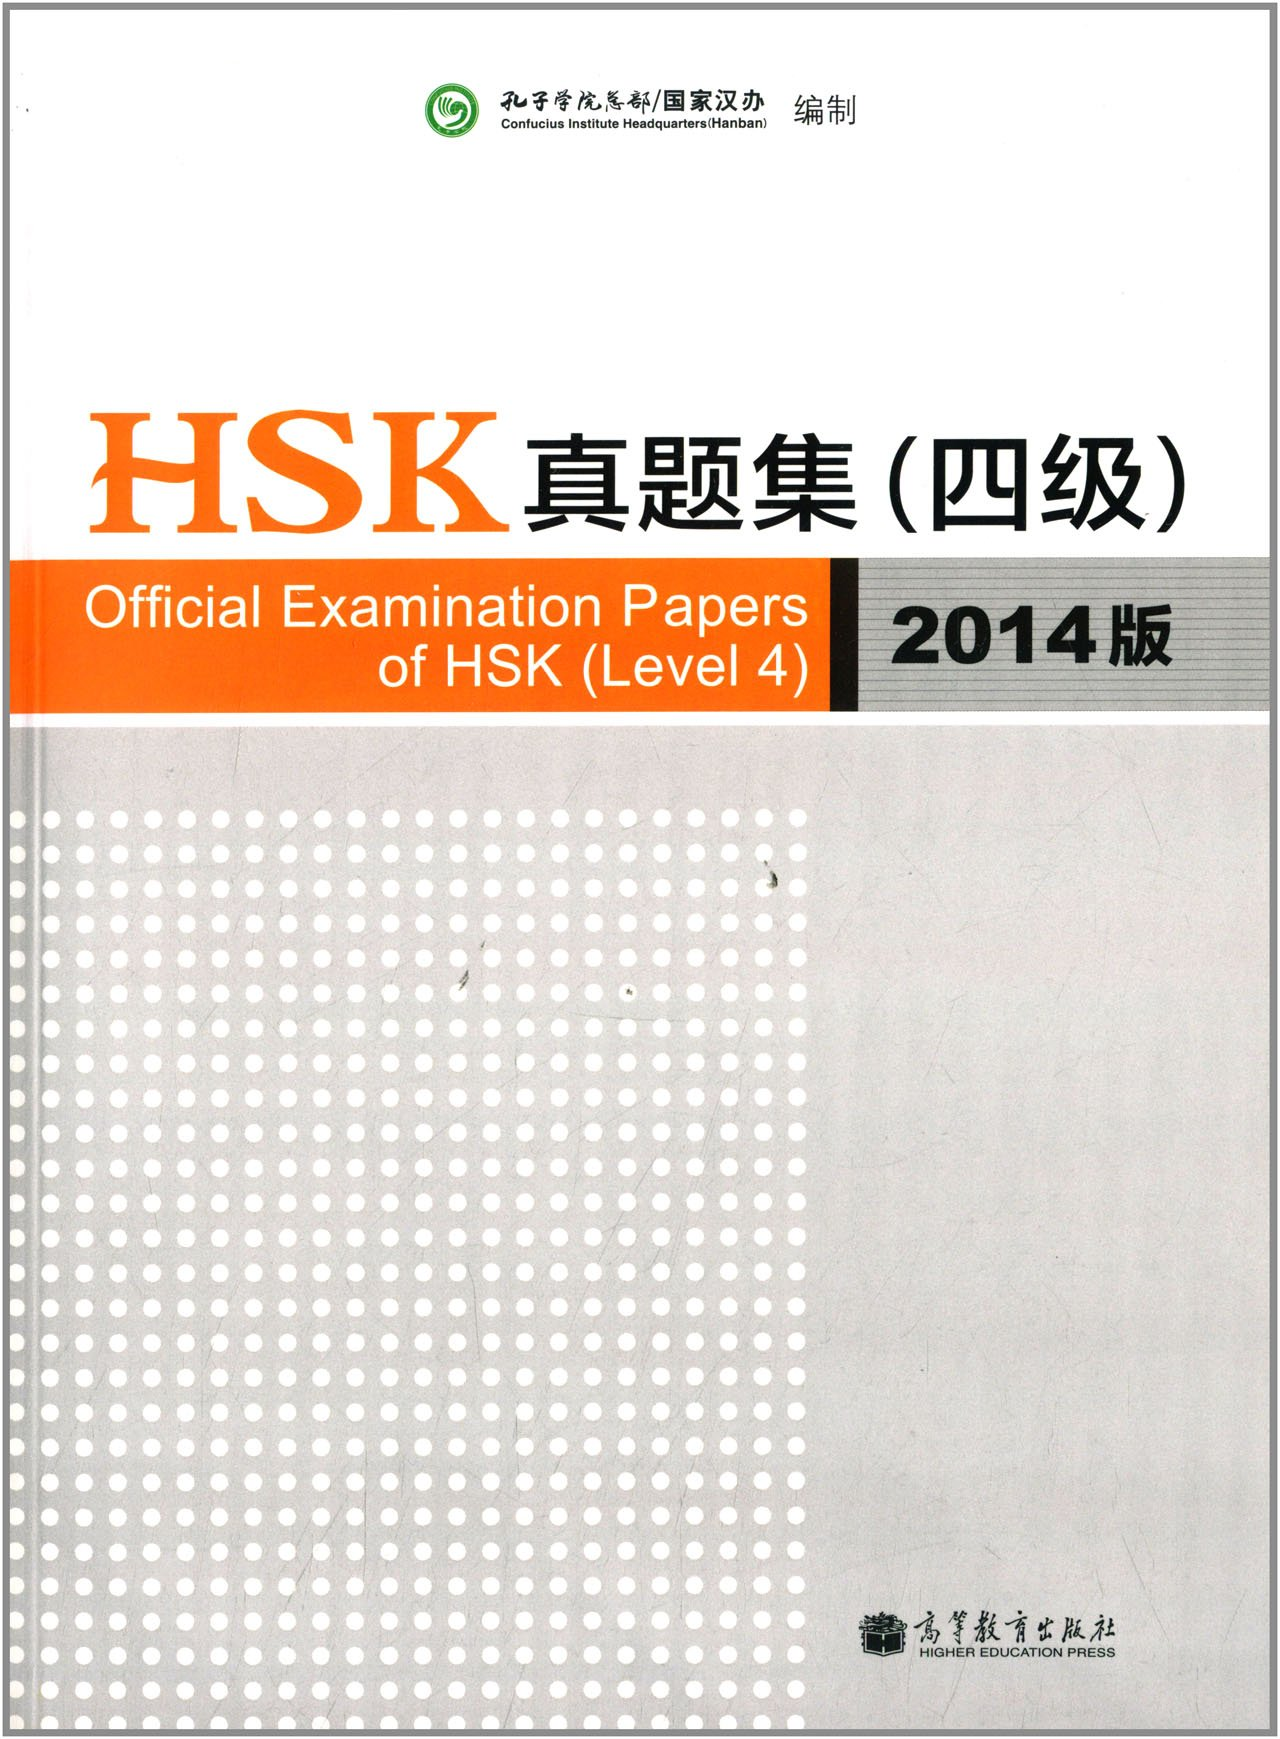 Official Examination Papers of HSK (Level 4) HSK真题集(4级)(2014版)